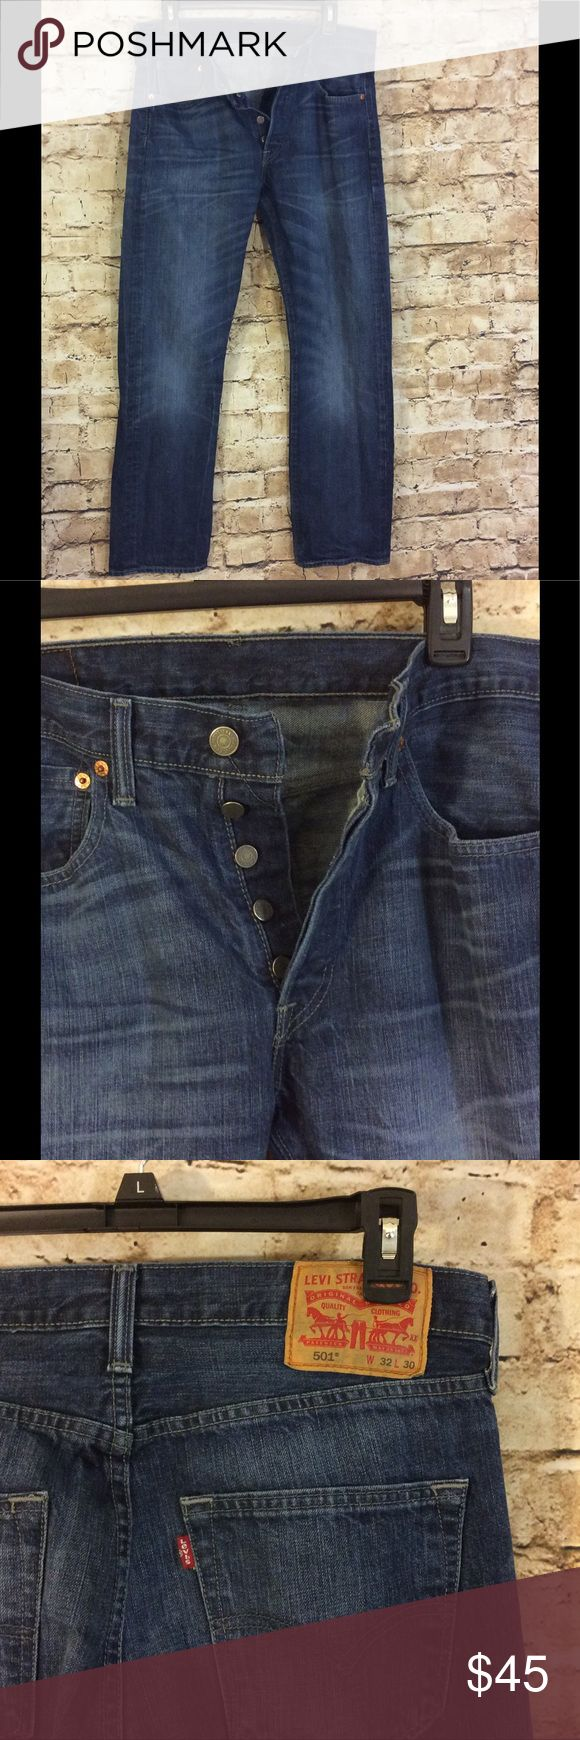 Levi Strauss 501 button fly jeans 100% cotton Levi Strauss and Company 501 button fly dark wash jeans Waist 32 length 29 Rise is 11 inches Boot cut New condition Levi's Jeans Boot Cut